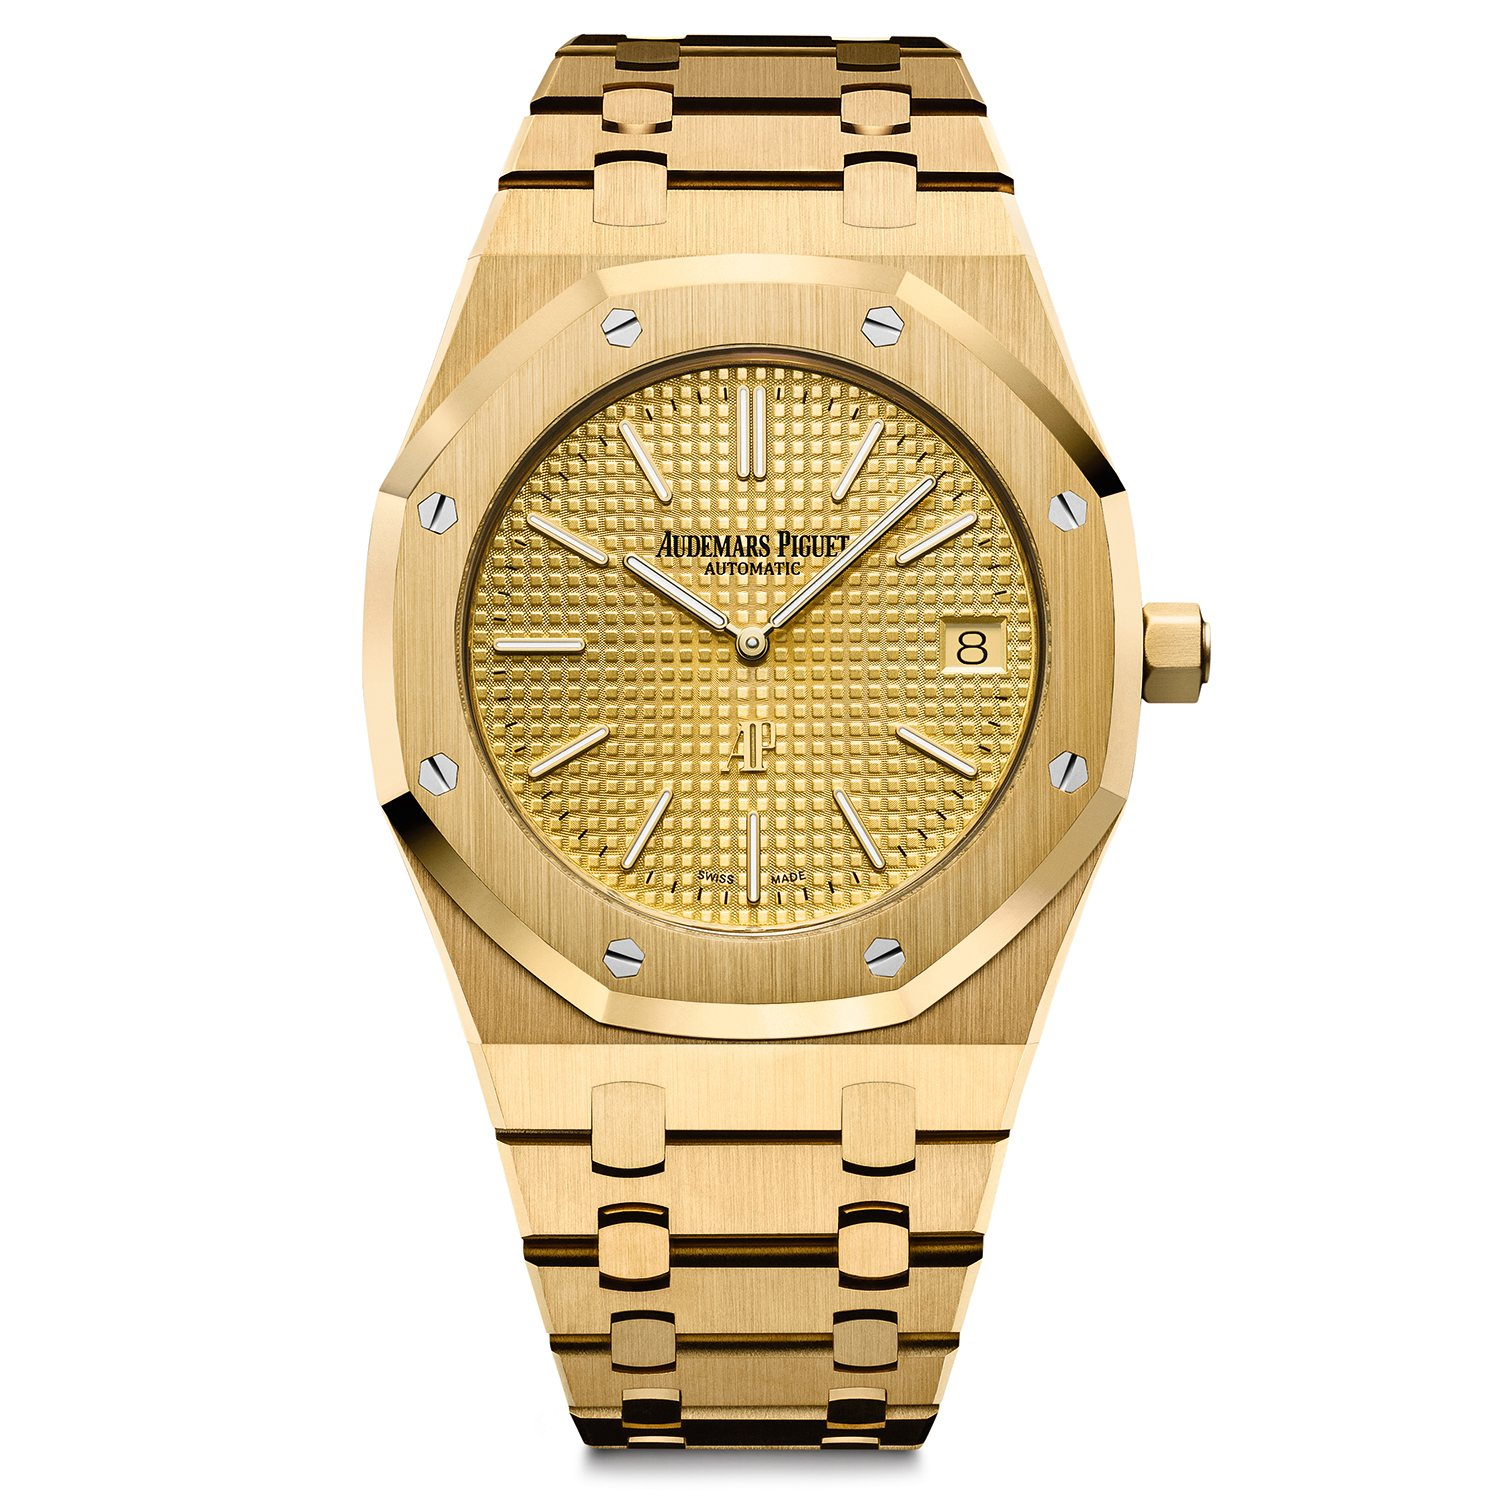 Audemars-Piguet-Yellow-Gold-15202-Jumbo-1.jpg